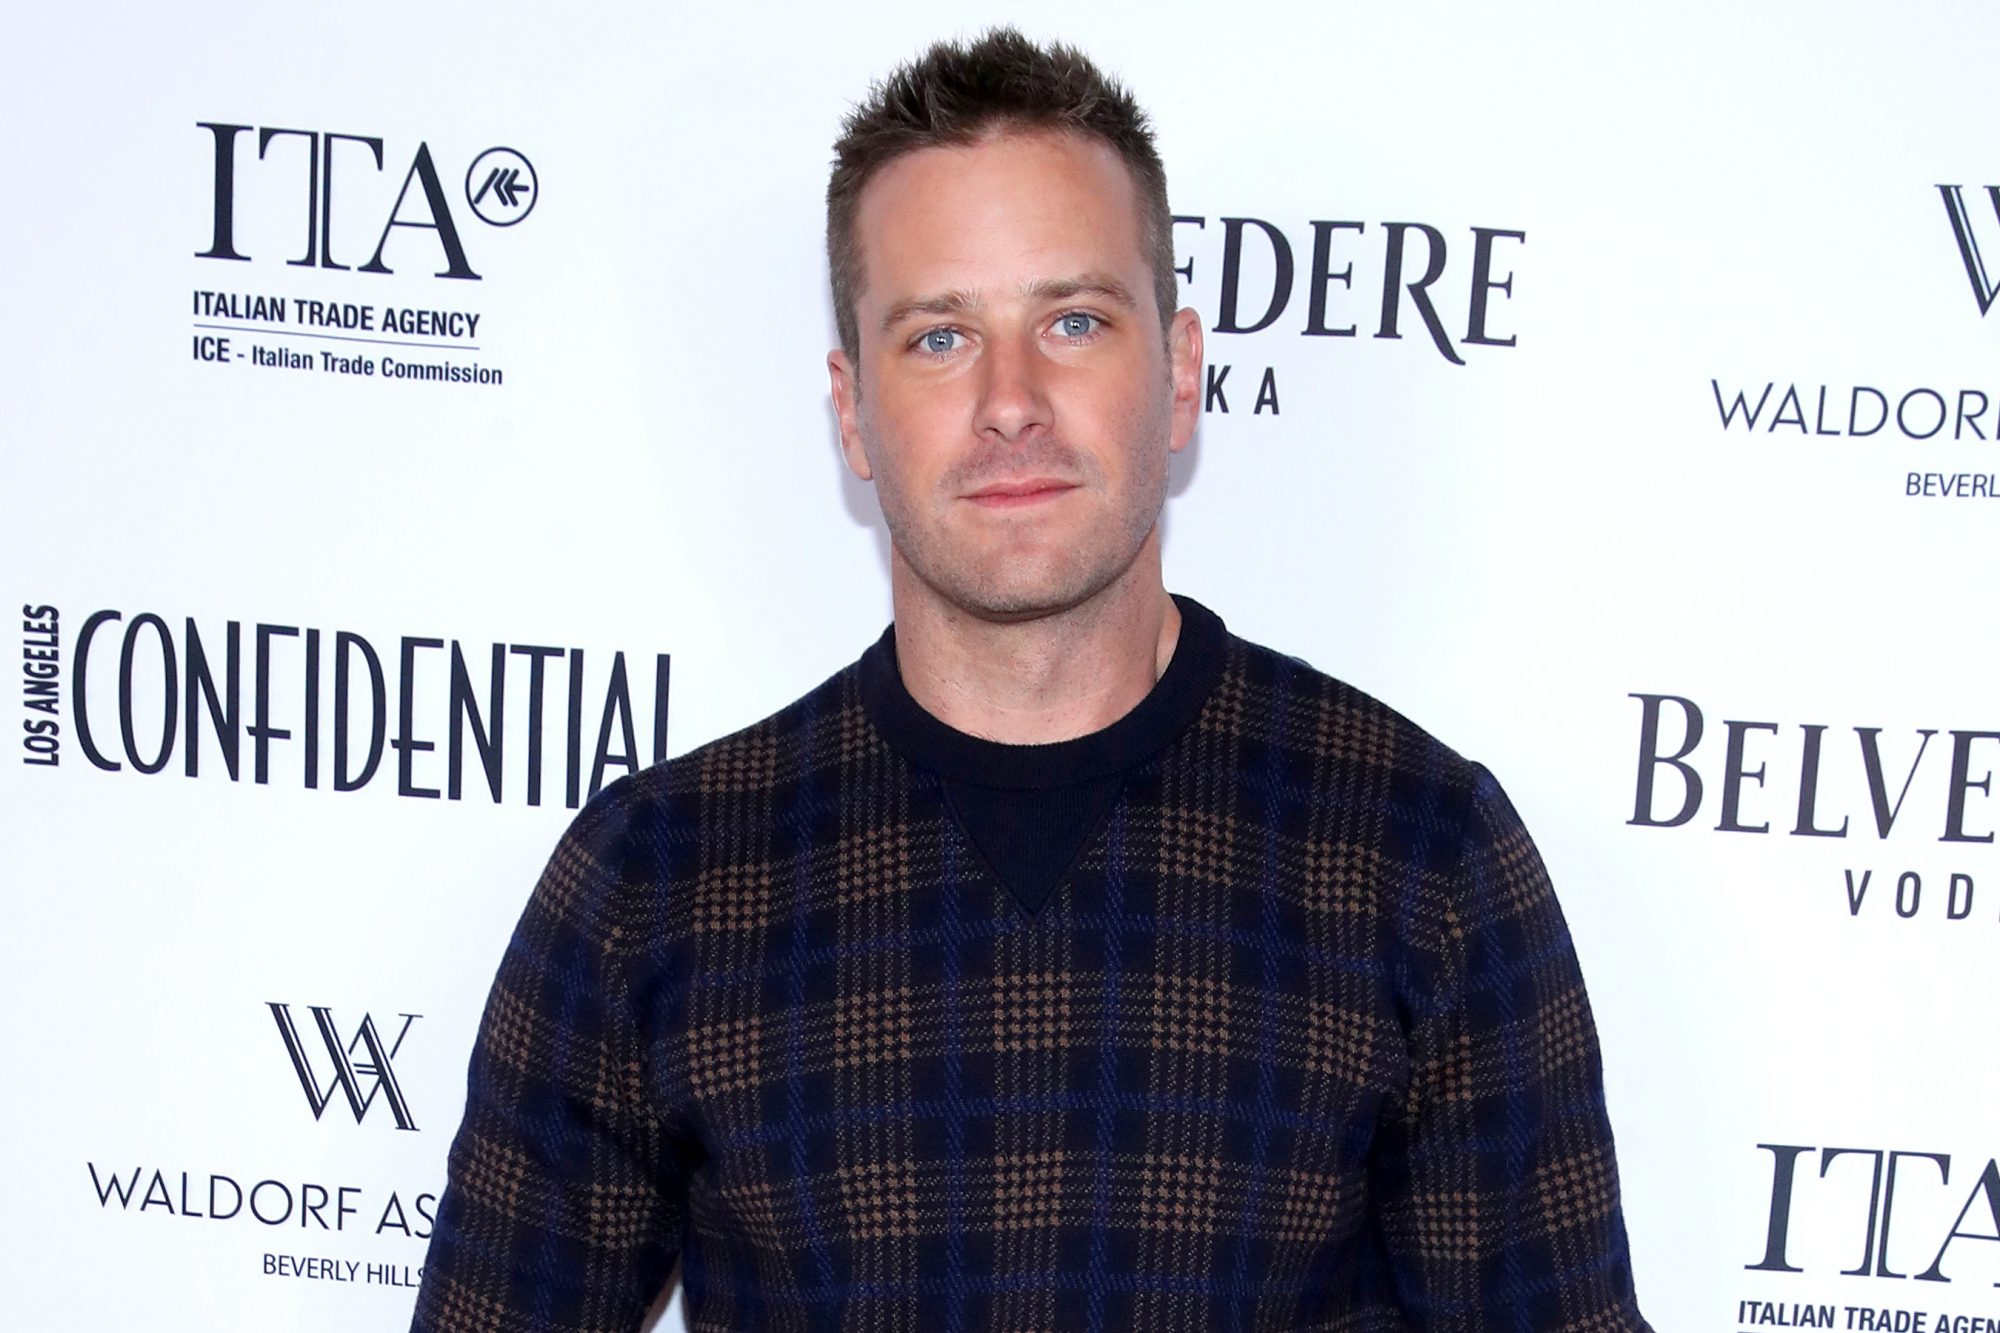 Los Angeles Confidential And Armie Hammer Celebrate The Annual Awards Issue With Belvedere Vodka